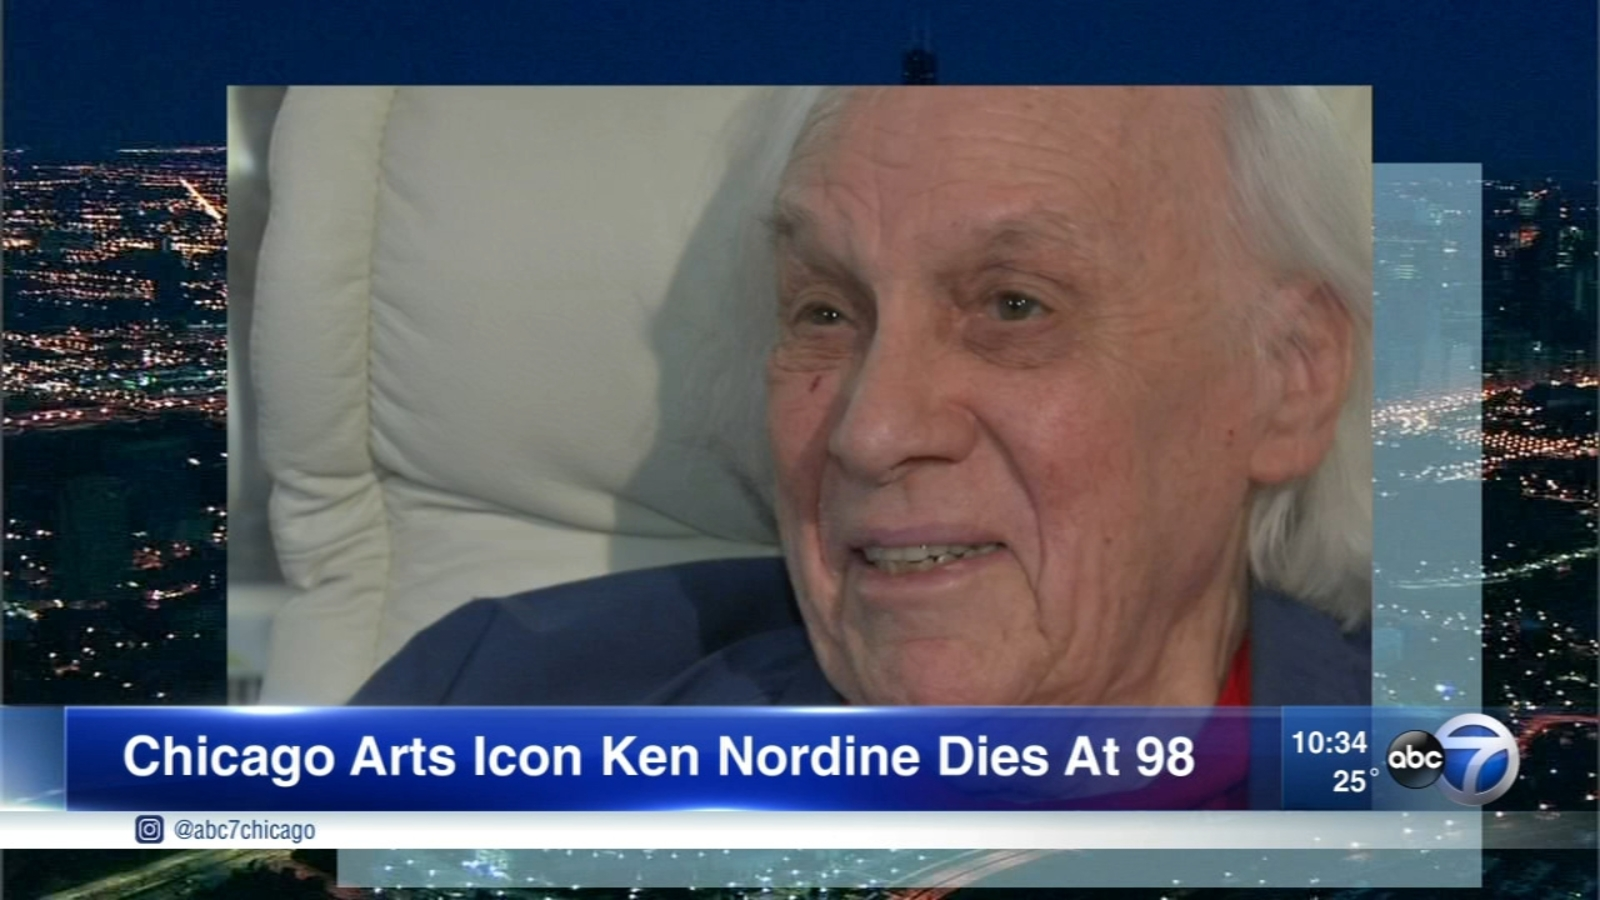 Ken Nordine, 'The Voice' and 'Word Jazz' creator, dies at 98